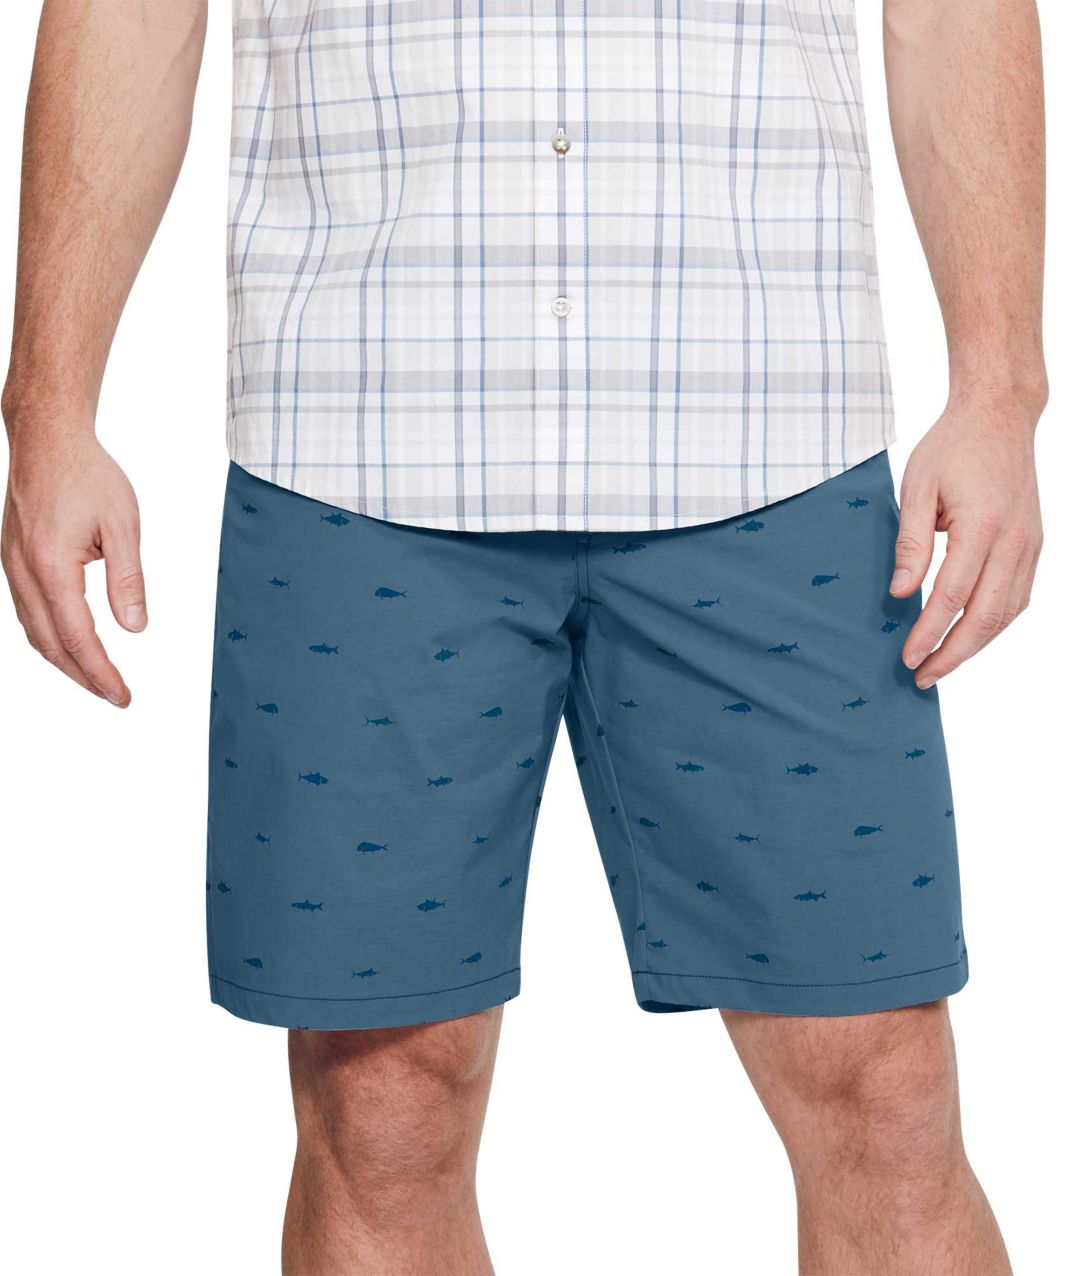 0079d83670 Under Armour Men's Fish Hunter 2.0 Shorts | DICK'S Sporting Goods